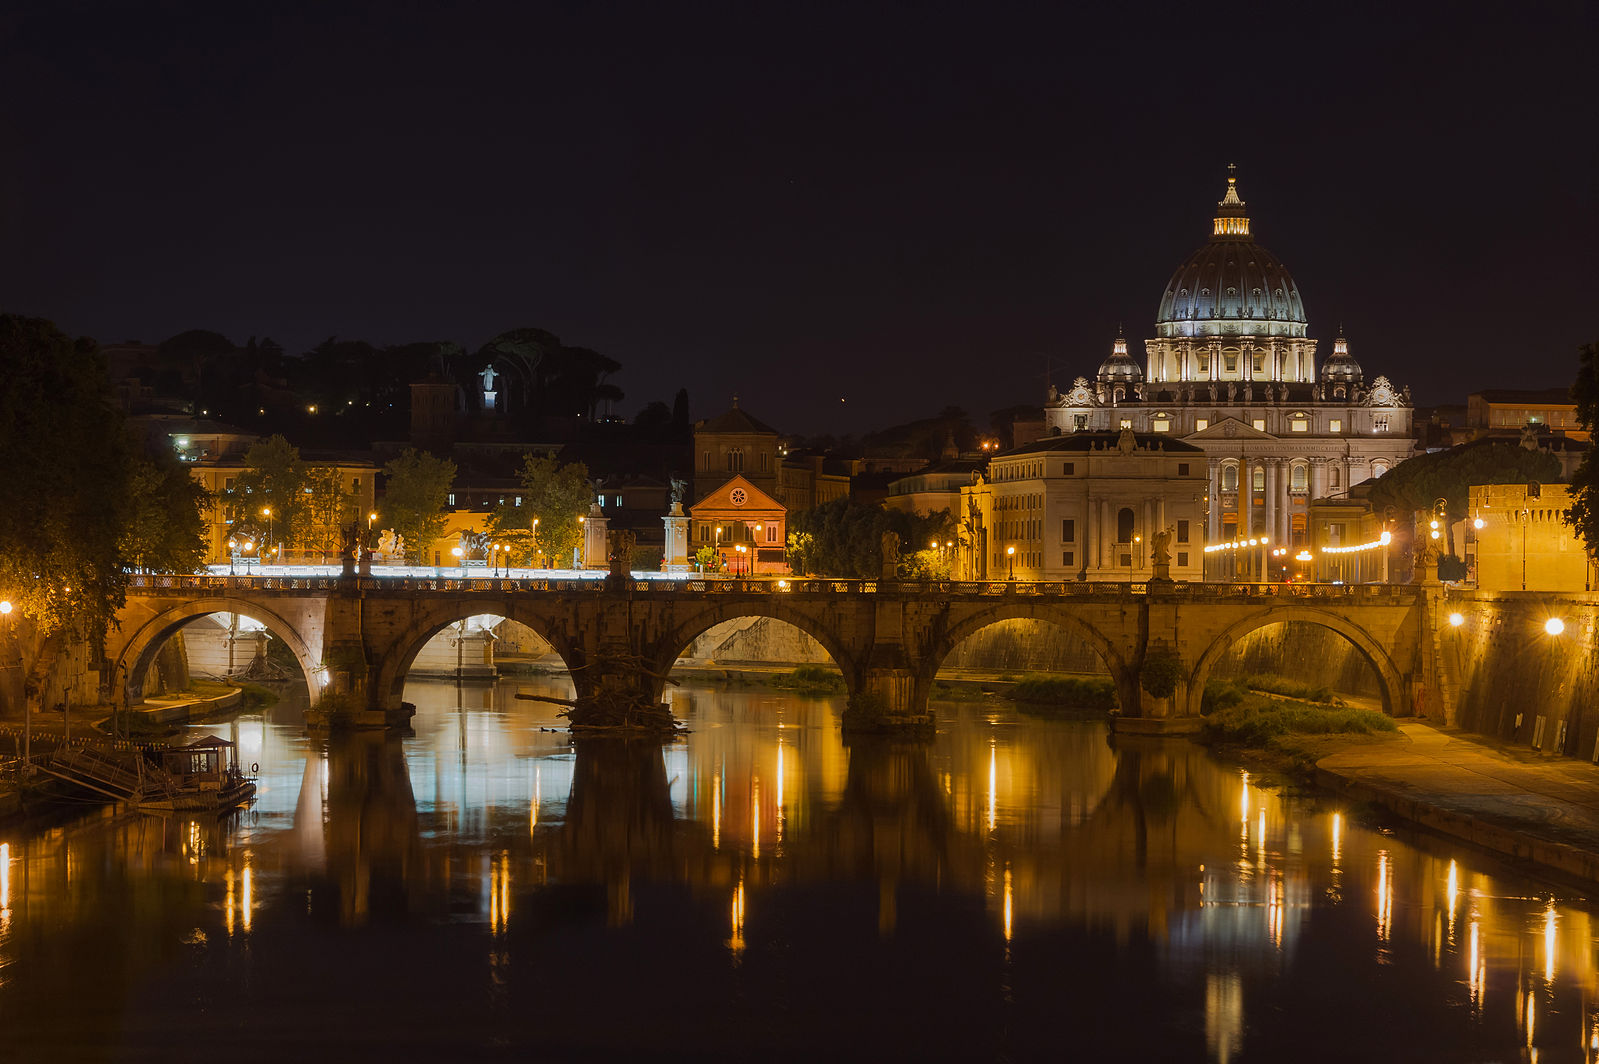 Saint_Peter's_Basilica,_Sant'Angelo_bridge,_by_night,_Rome,_Italy.jpg